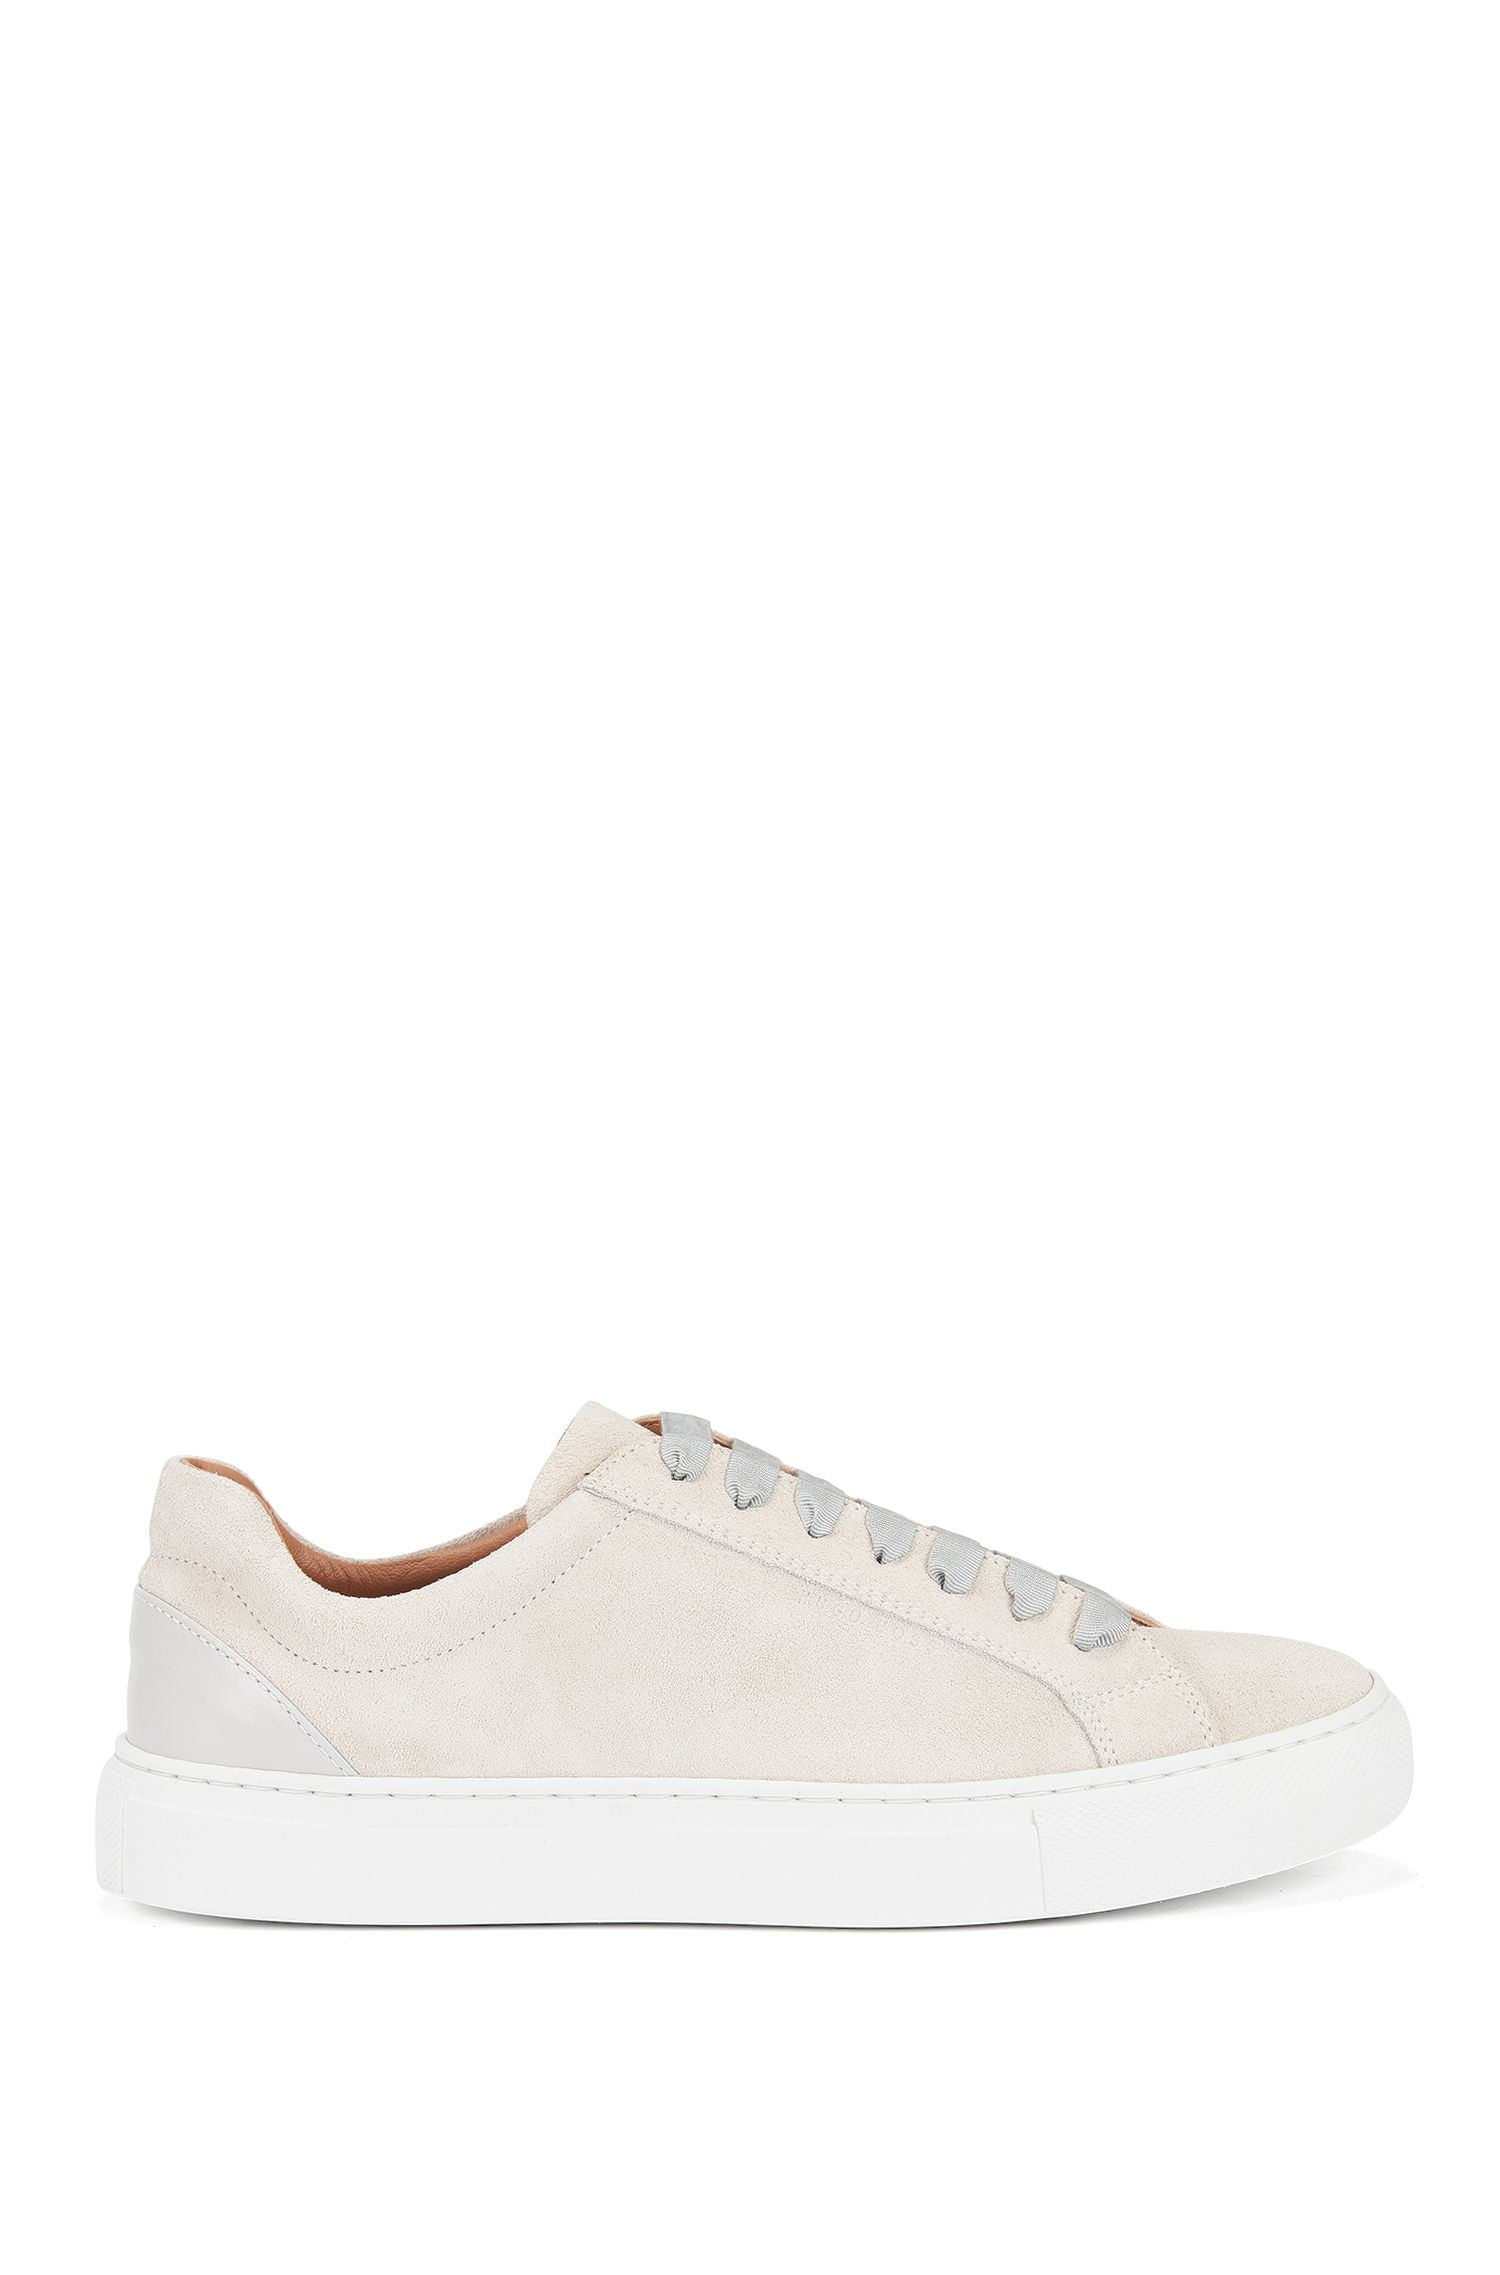 Sneakers stringate in pelle italiana